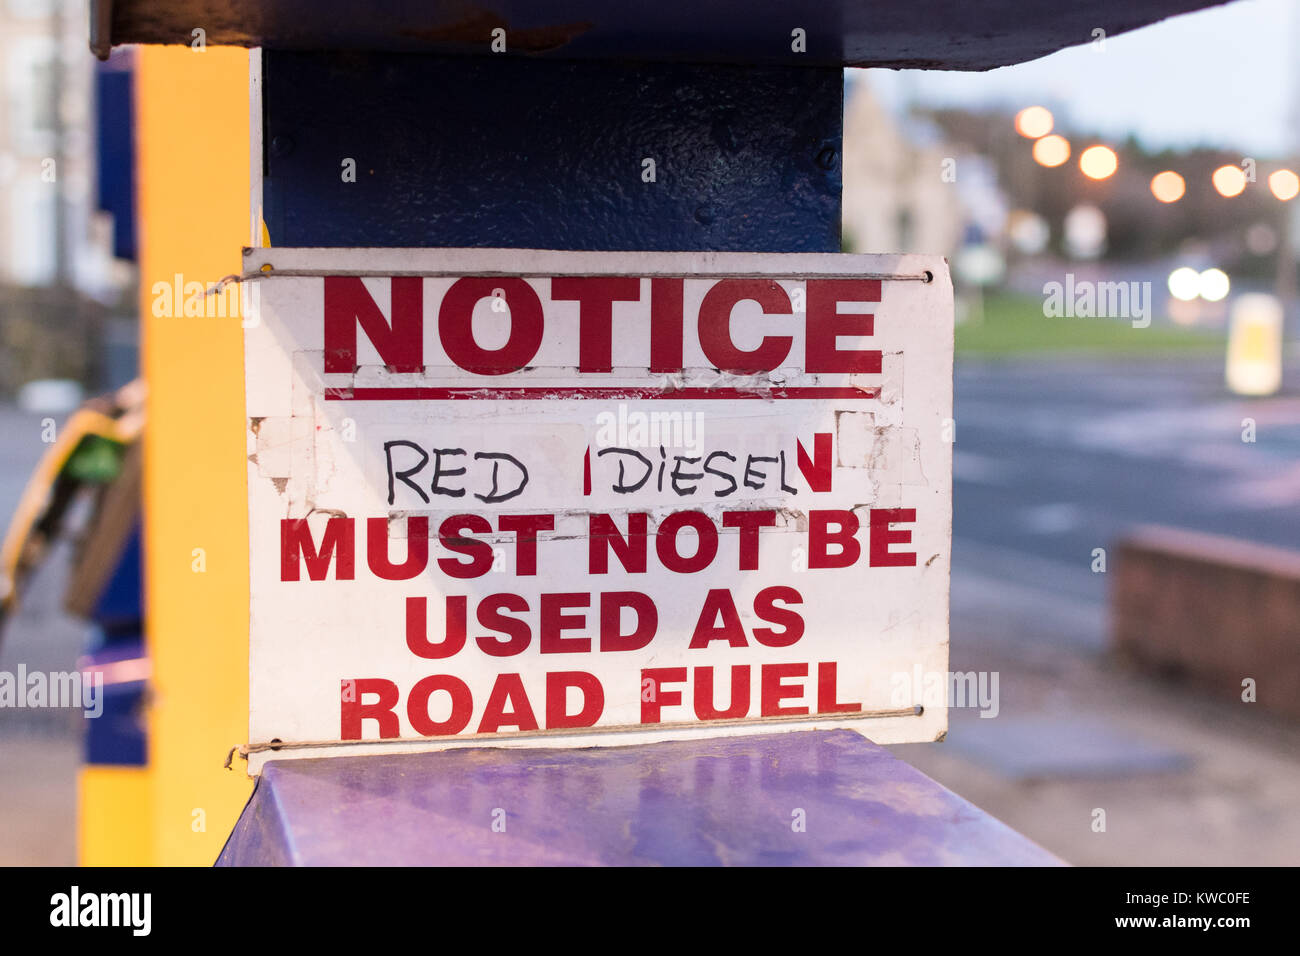 Red Diesel must not be used as road fuel sign at garage in England, UK - Stock Image